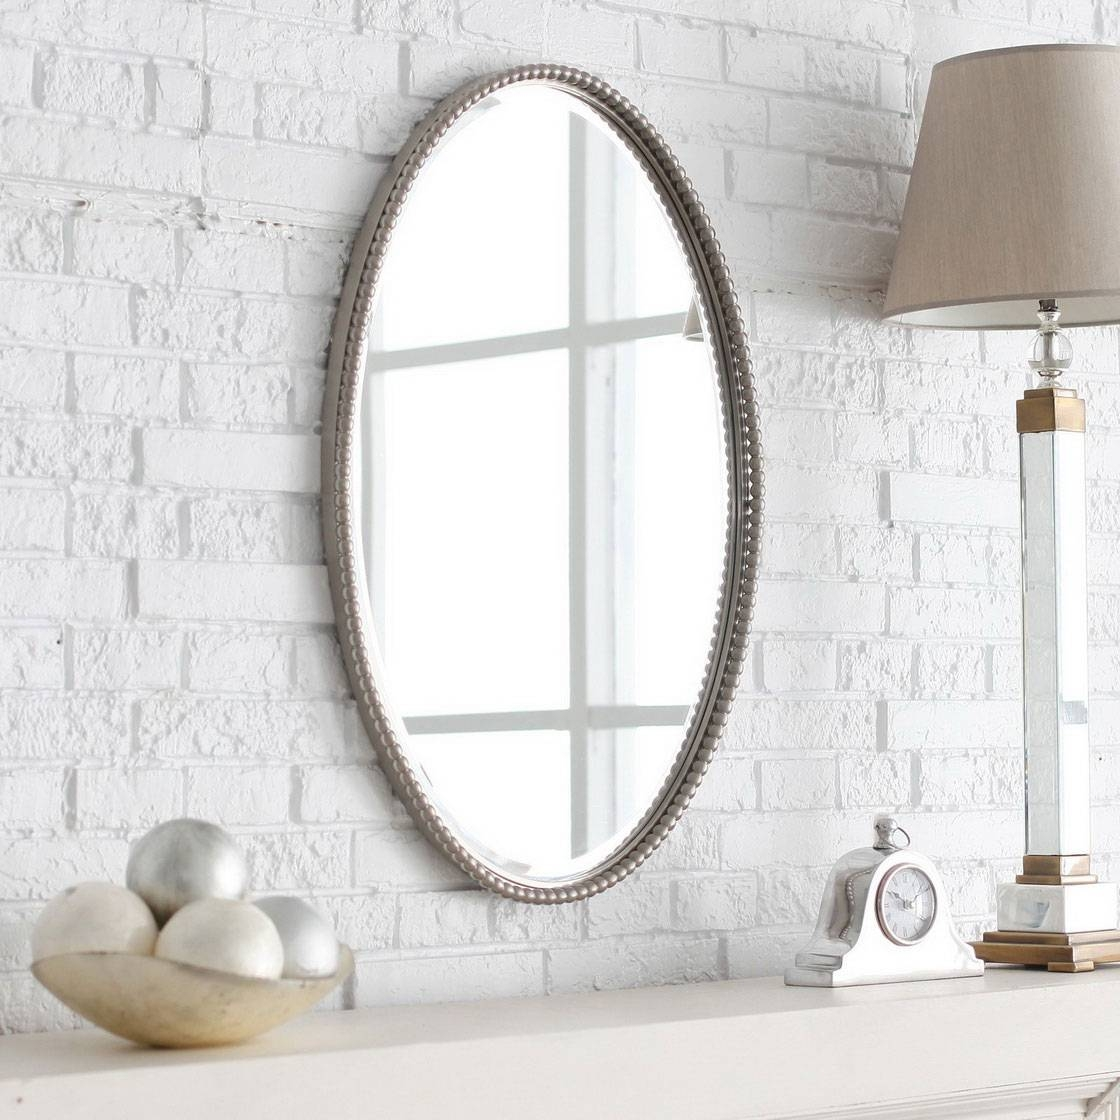 Large Oval Mirrors For Bathroom Walls | Home pertaining to Oval Mirrors for Walls (Image 14 of 25)